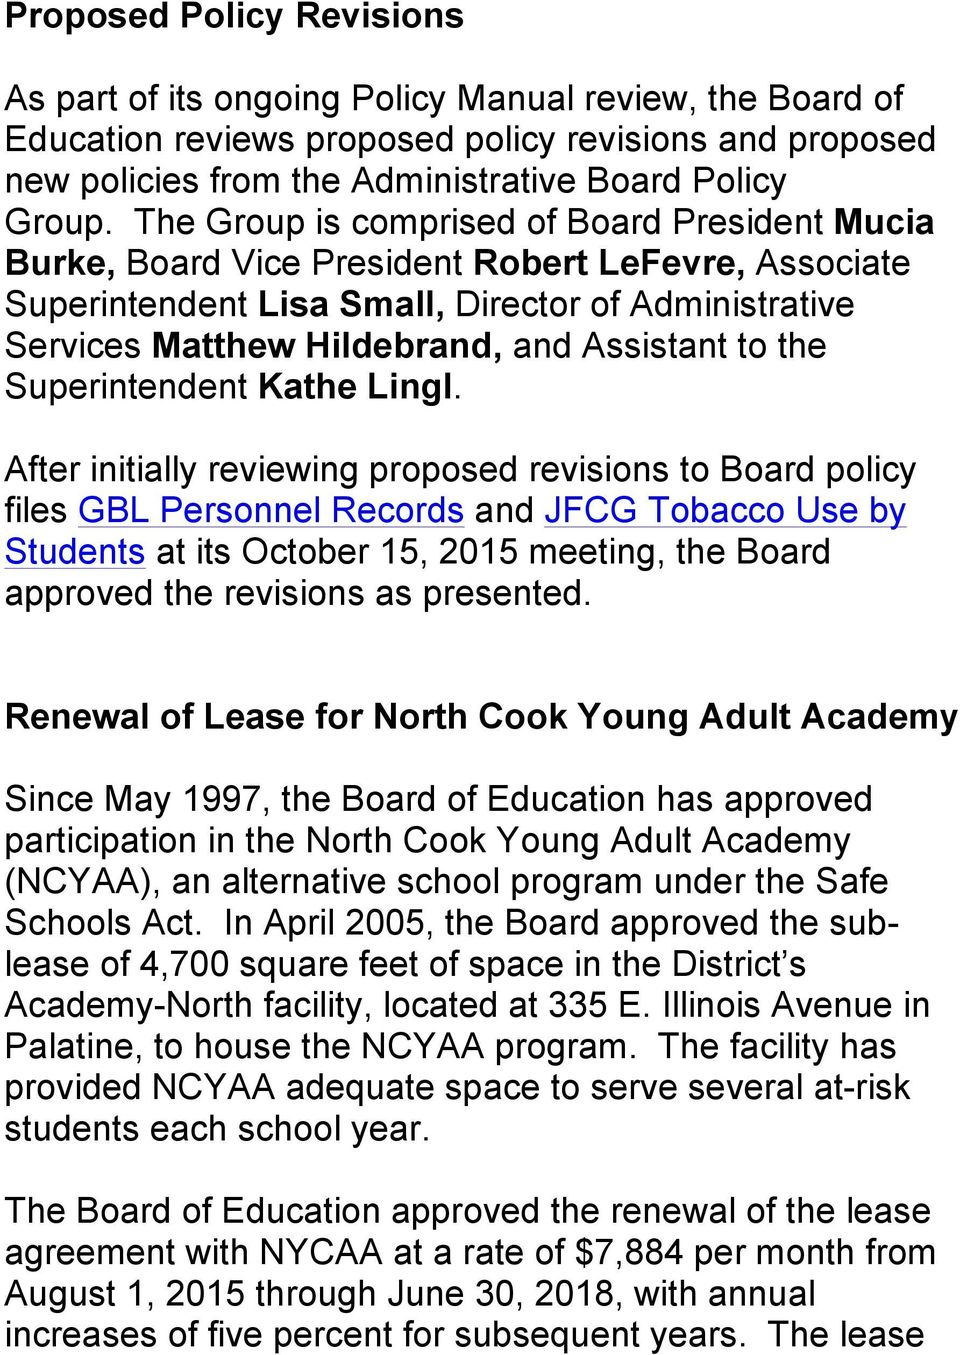 North cook young adult